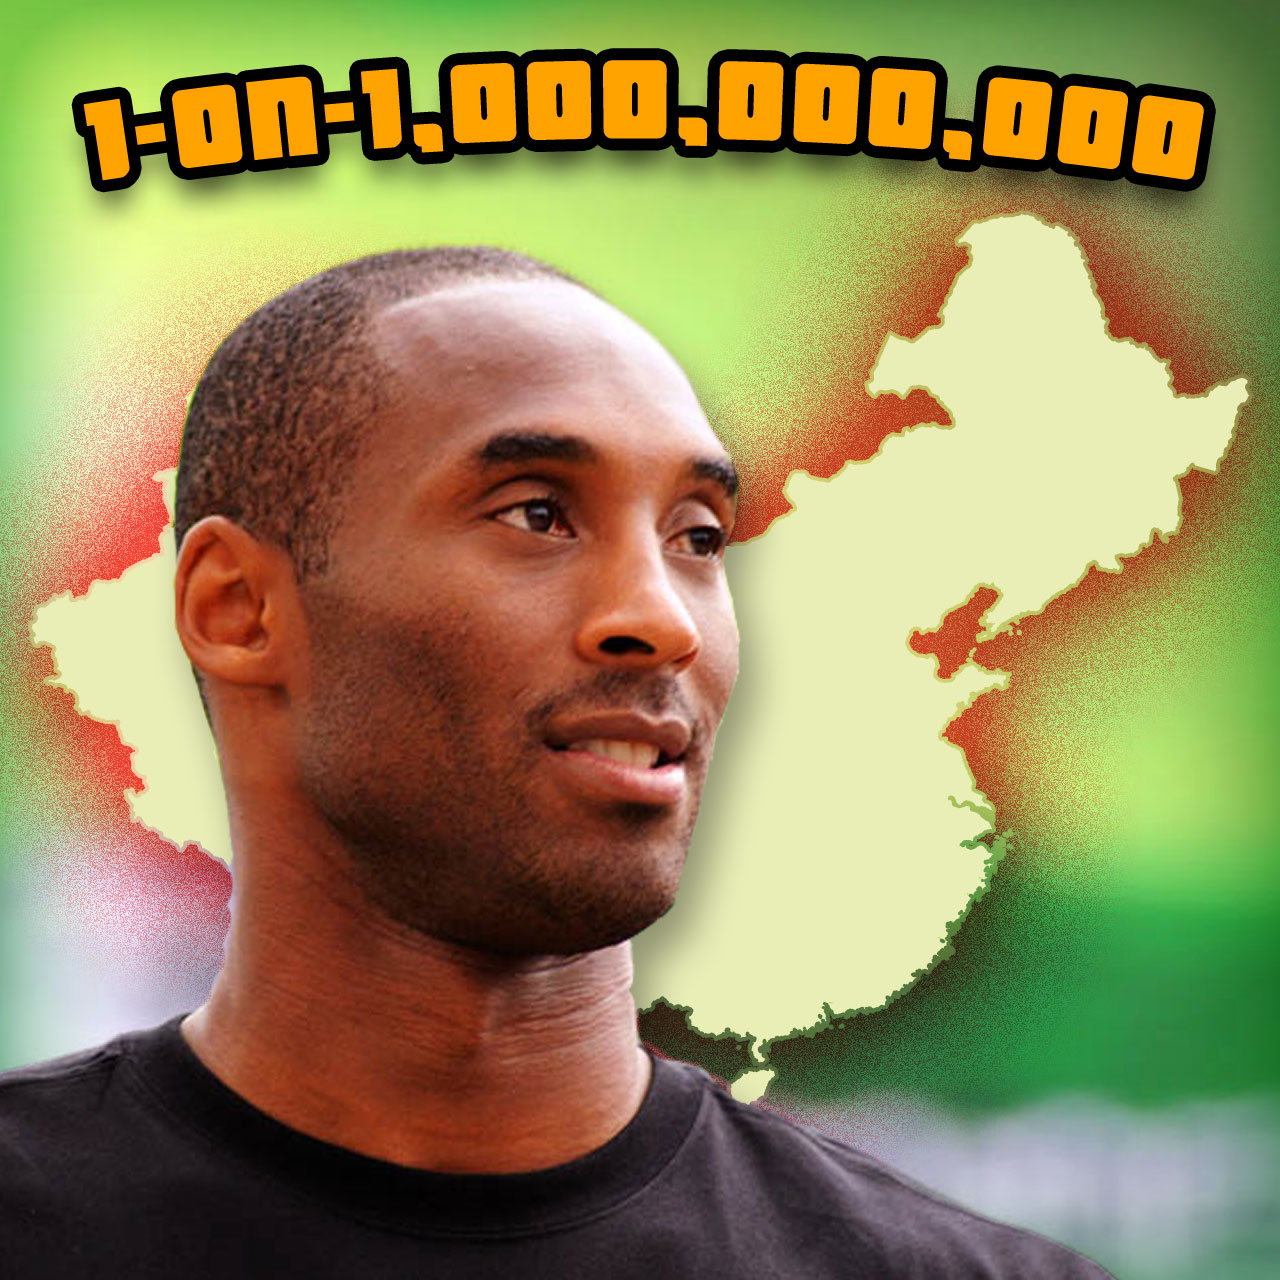 Kobe Bryant in China takes on all comers in an endless one-on-one game